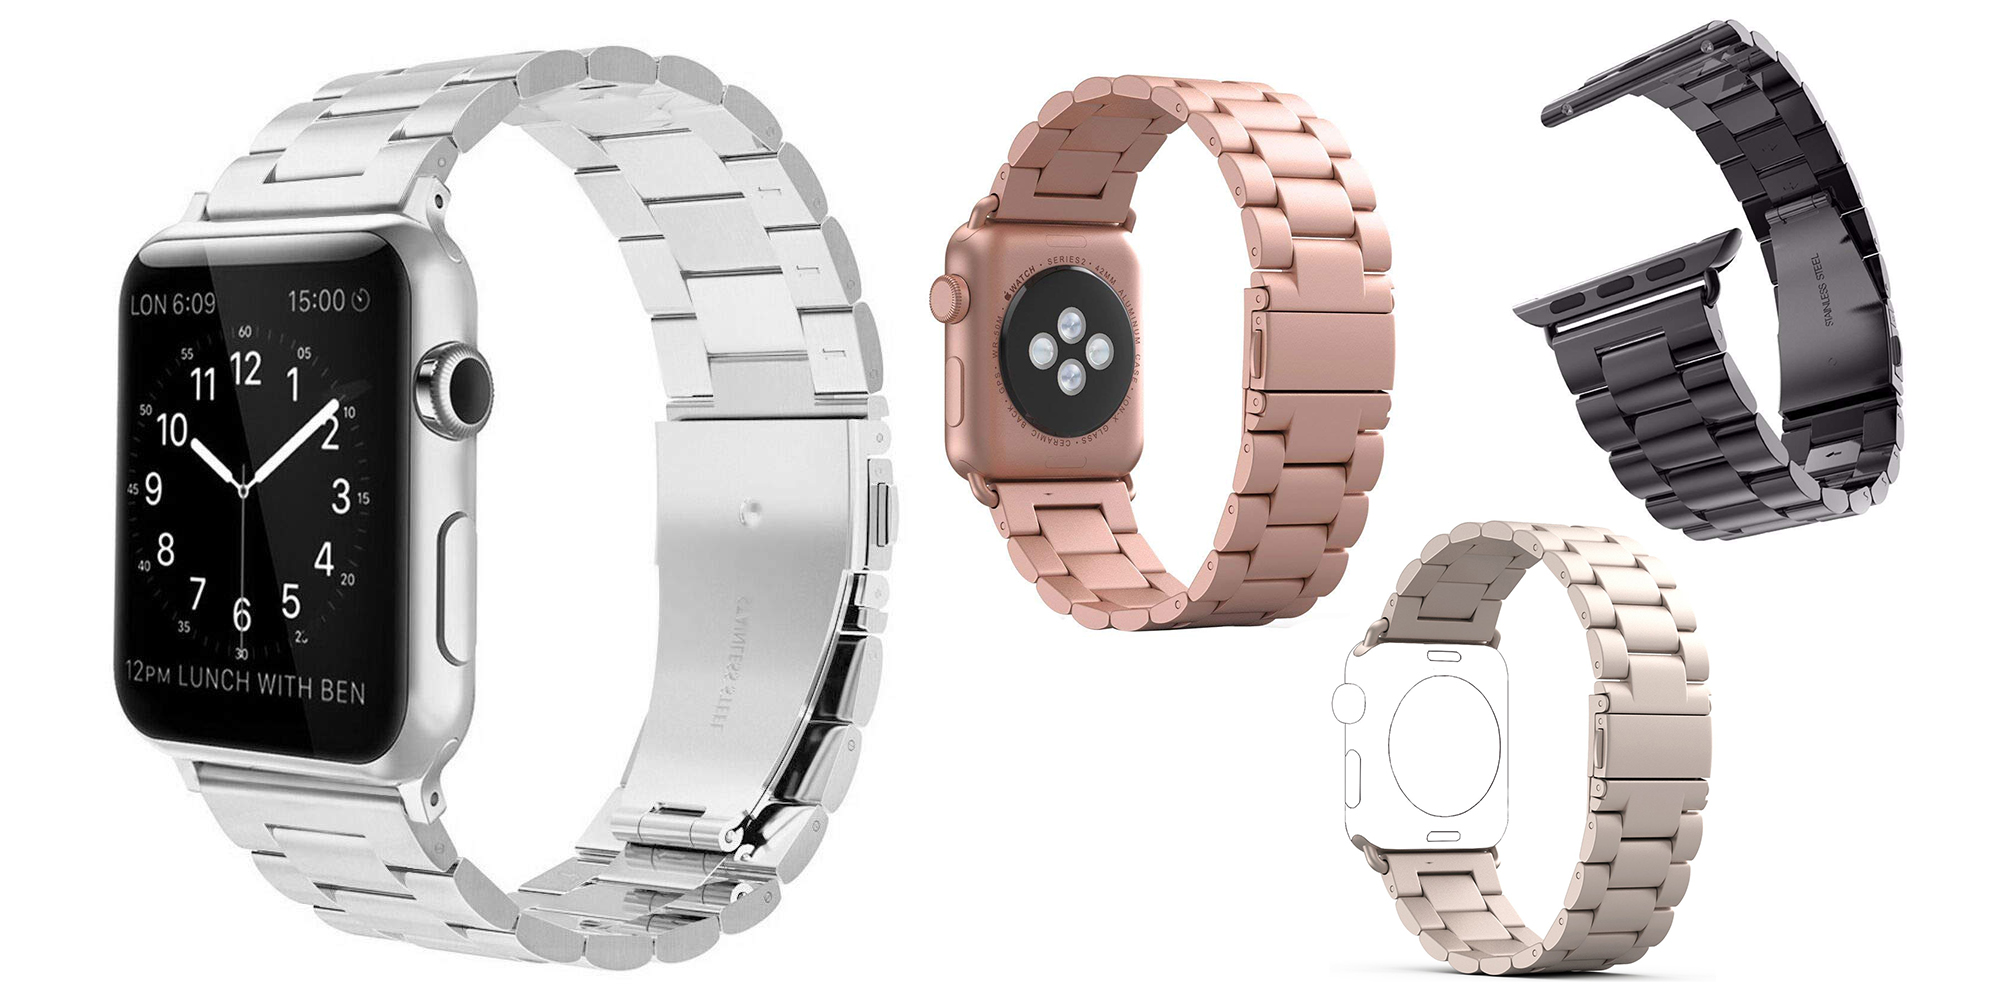 Pick up a stainless steel Apple Watch link band in various colors for $13.50